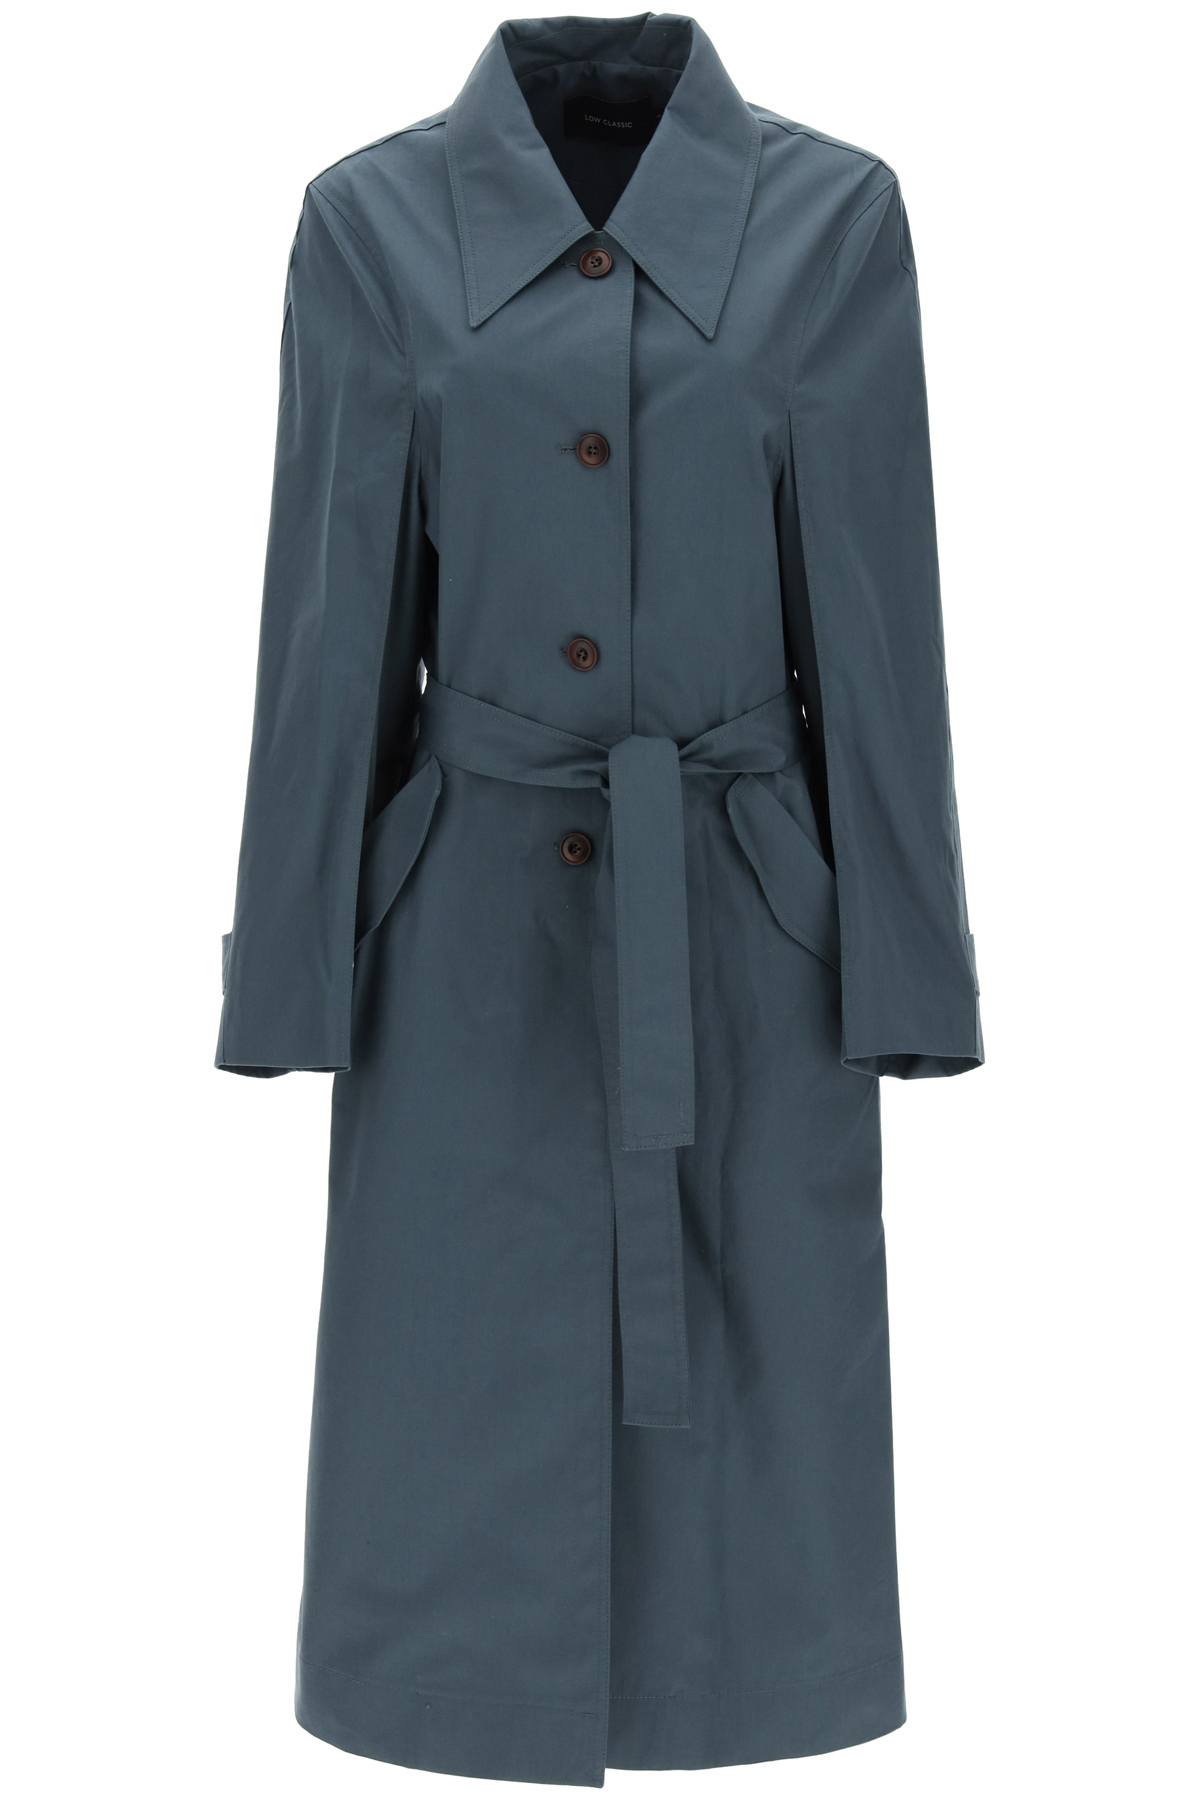 Low classic trench in cotone